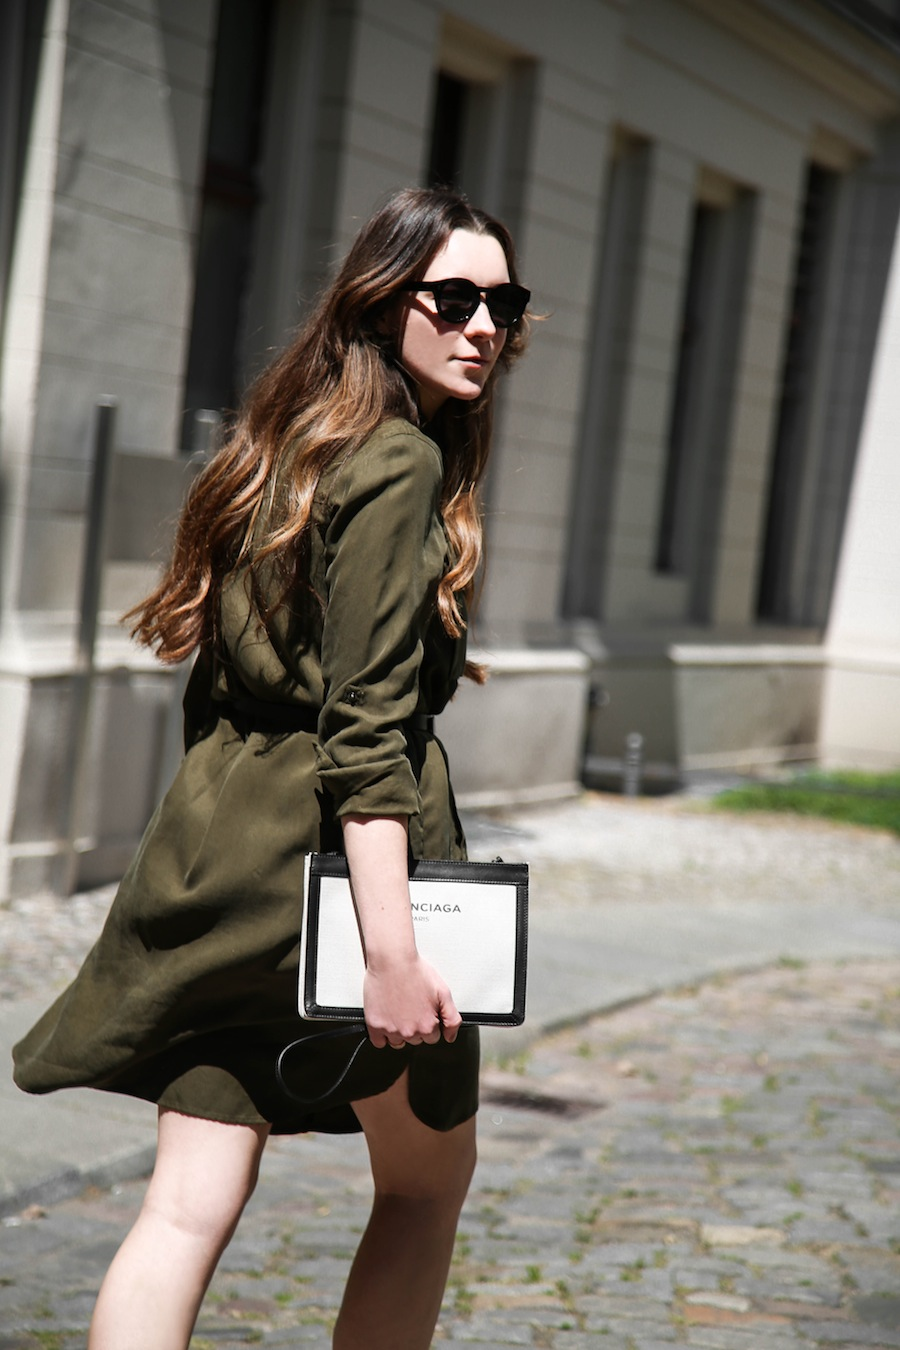 ari_traegt_khaki_dress_balenciaga_canvas_bag7